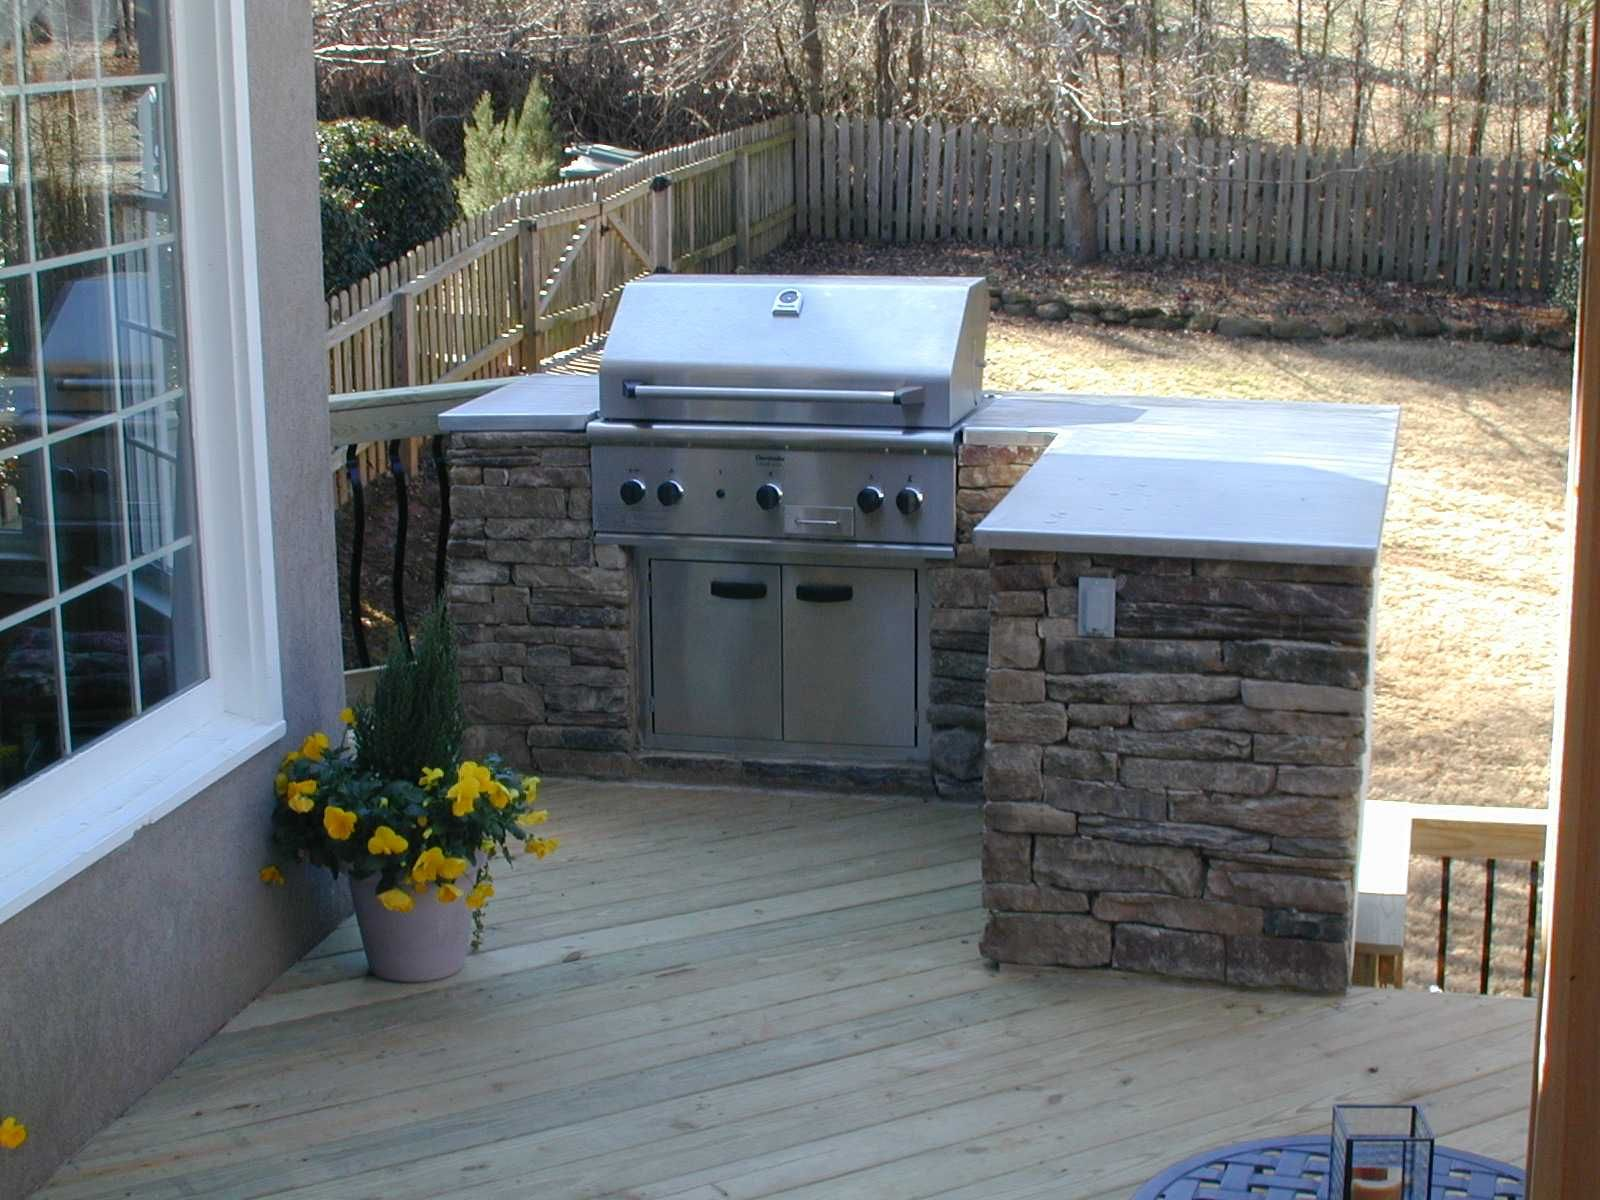 Outdoor Kitchen Plans Free Christmas Rugs Built In Grill On Wood Deck And Patio Ideas